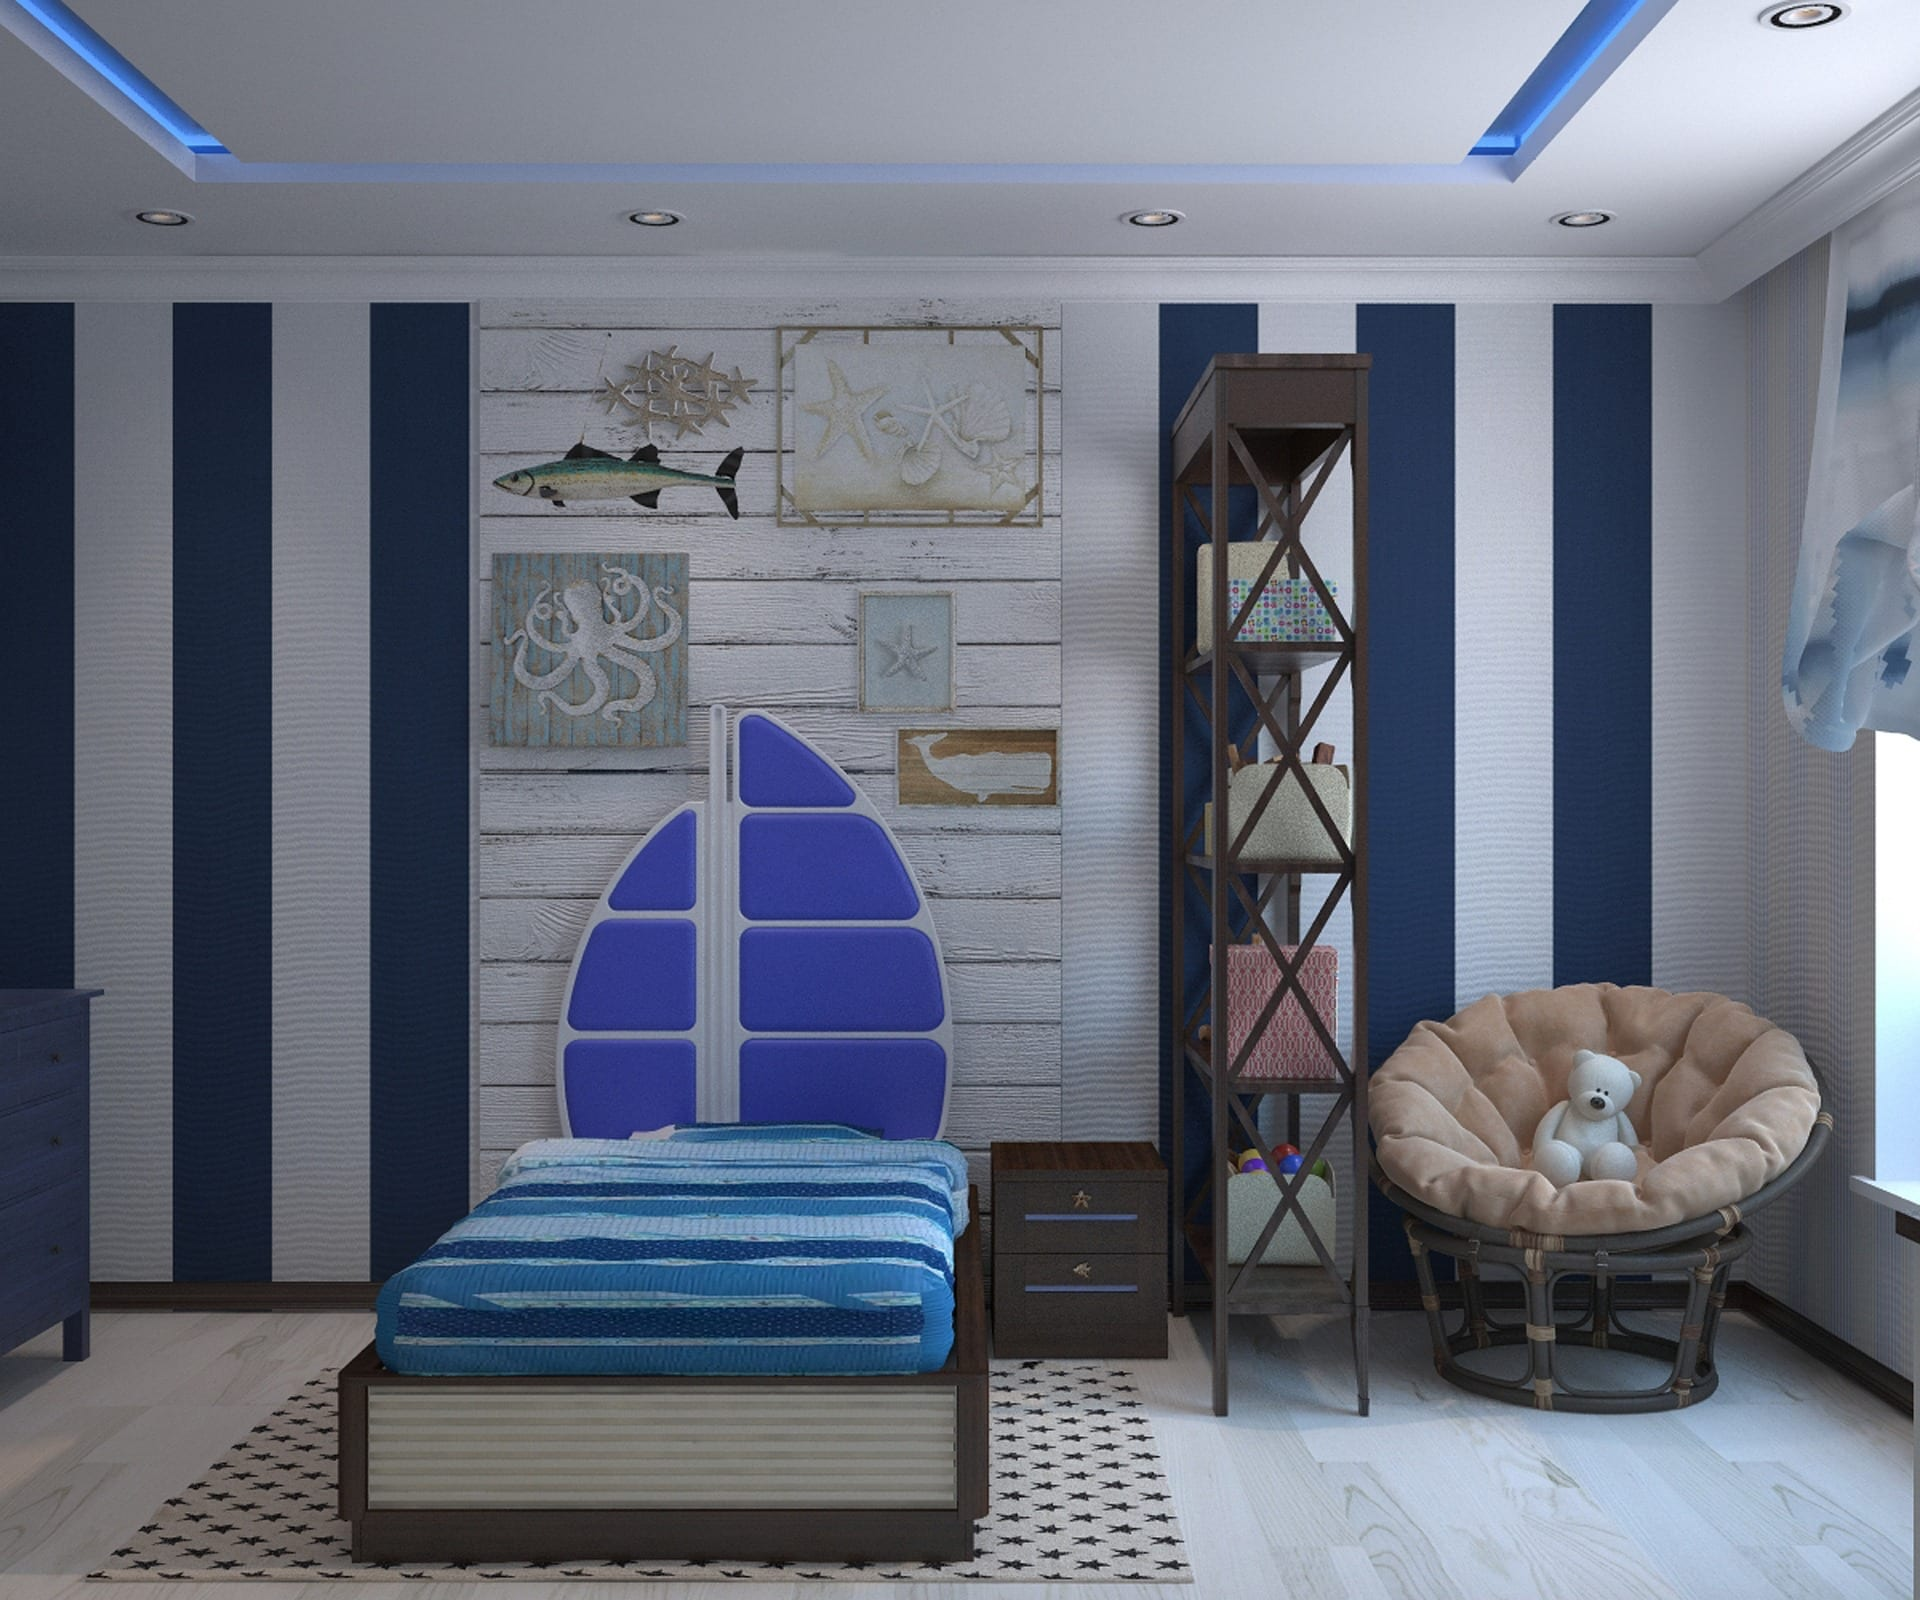 5 Decorating Tips For A Boy's Bedroom